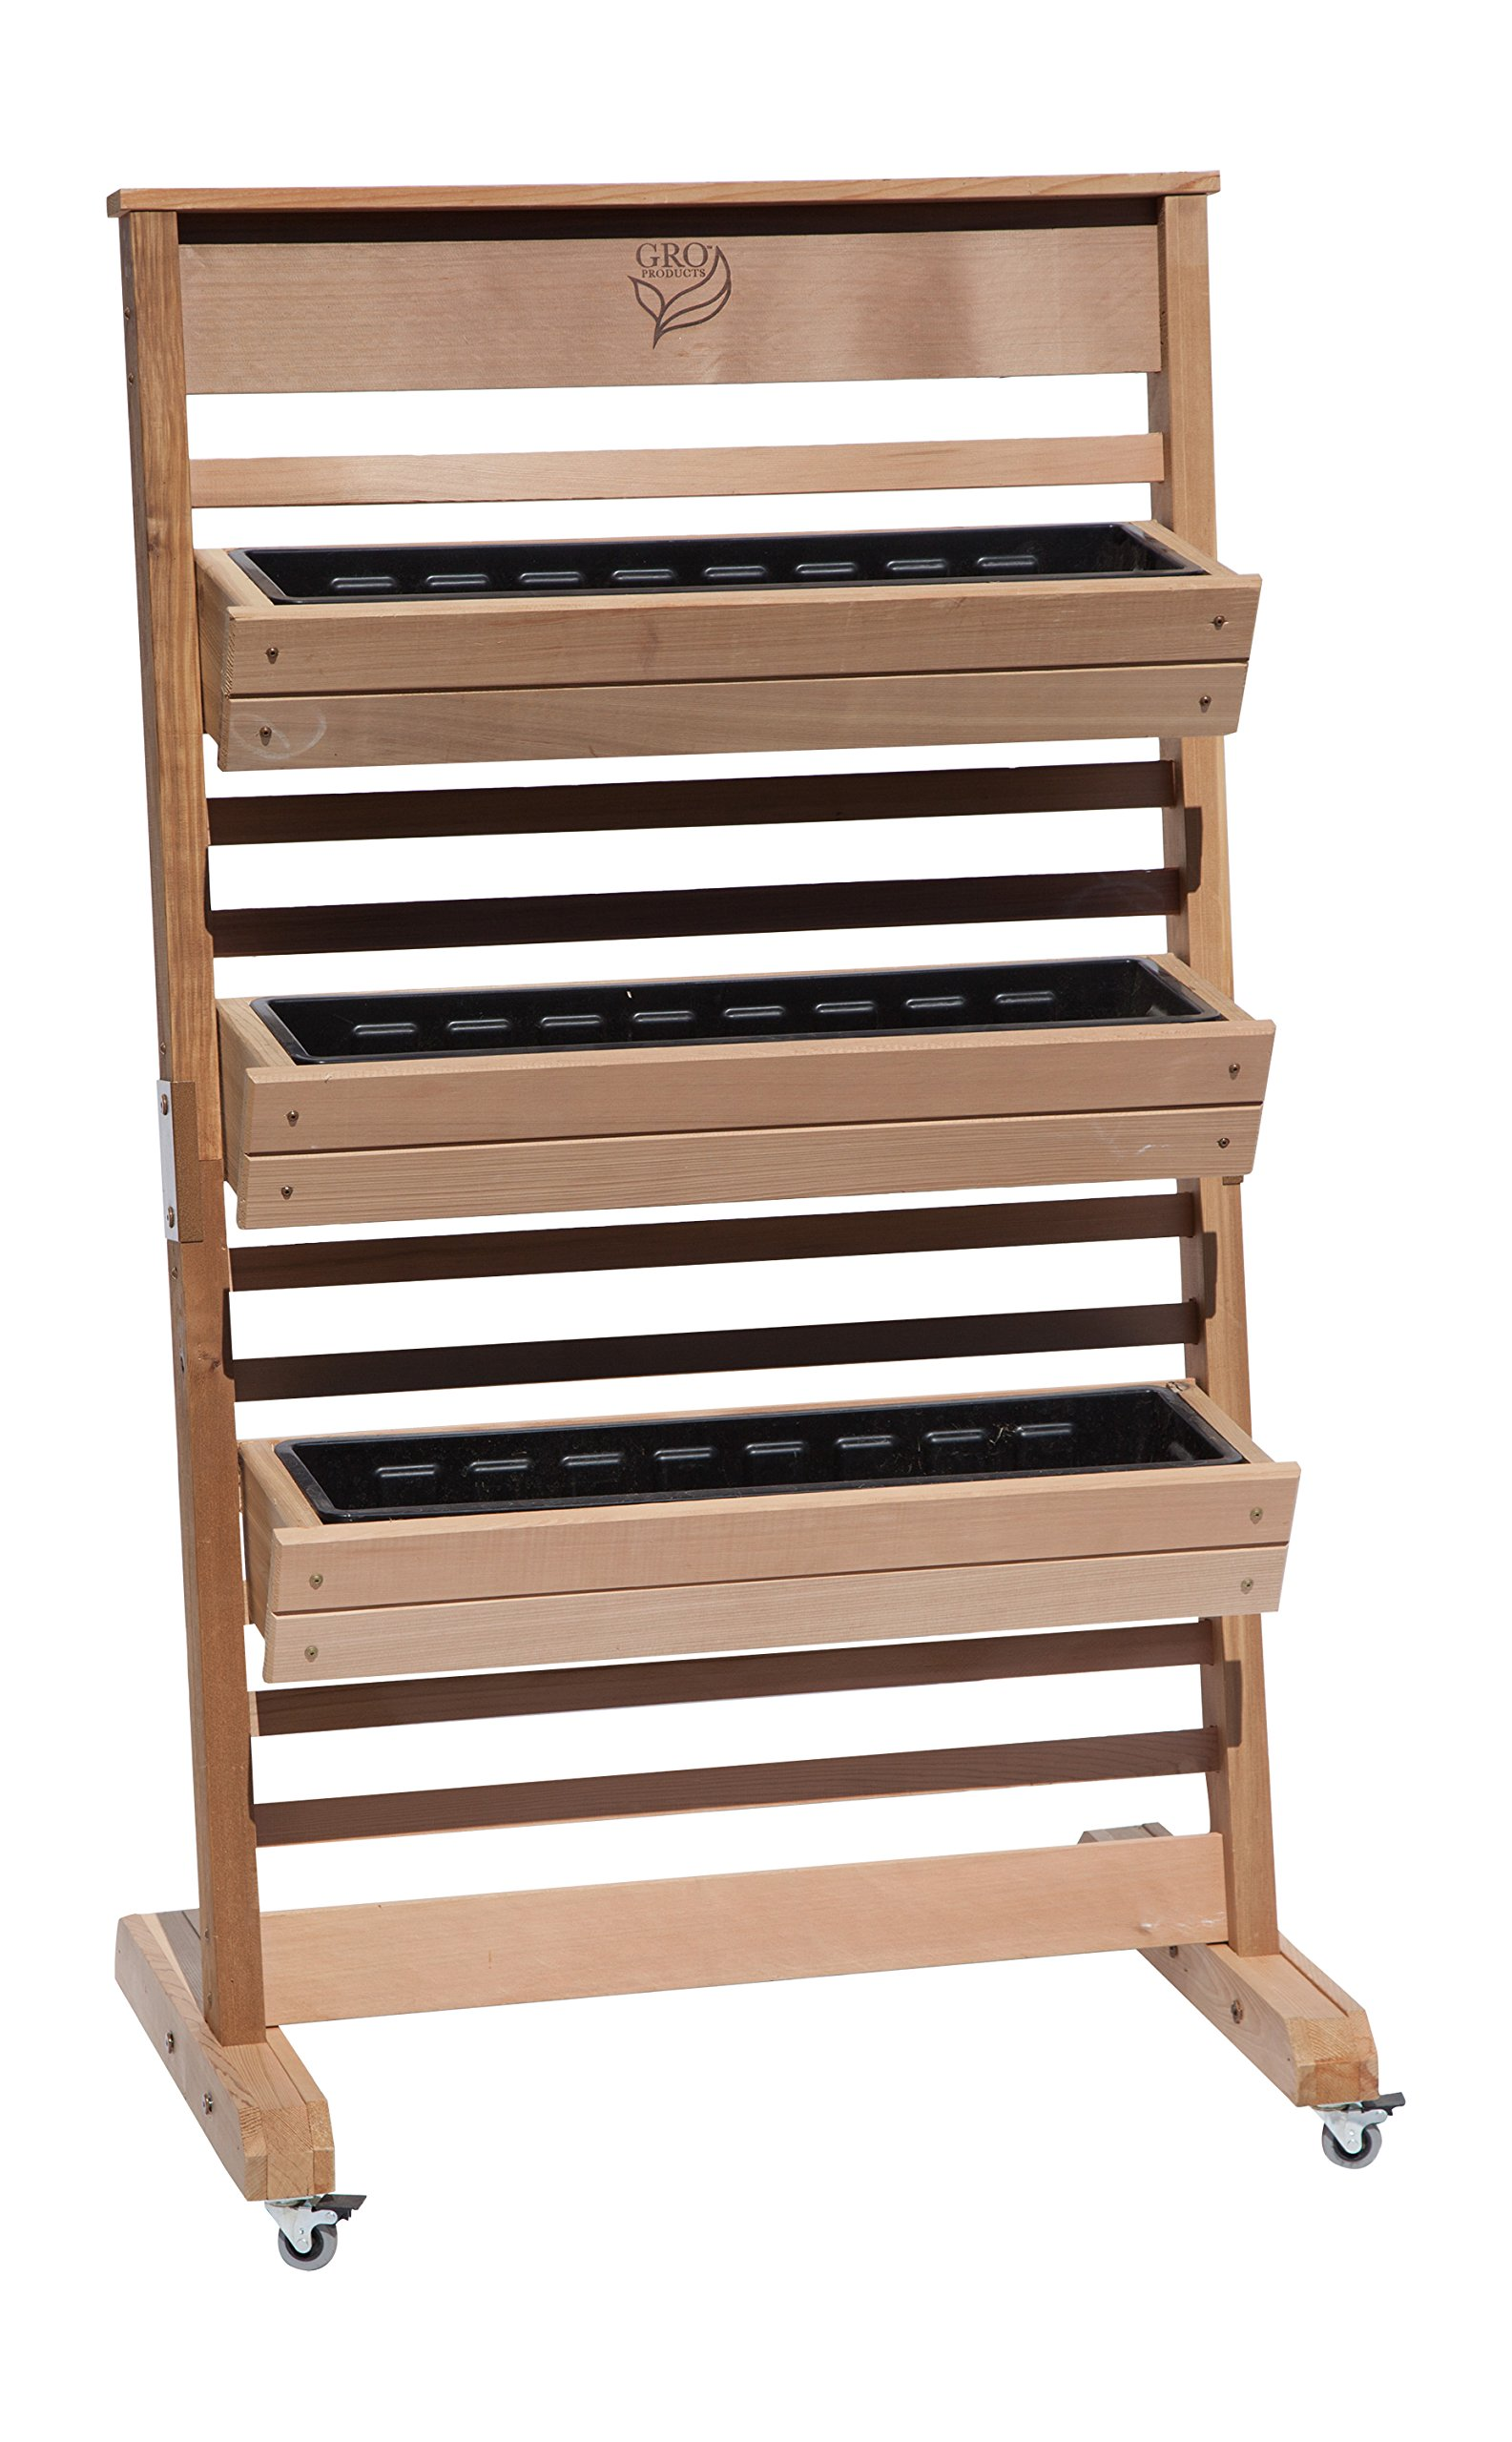 GRO Products Vertical GRO System with 3-Planter Boxes and Casters, 30-Inch by 58-Inch by Gro